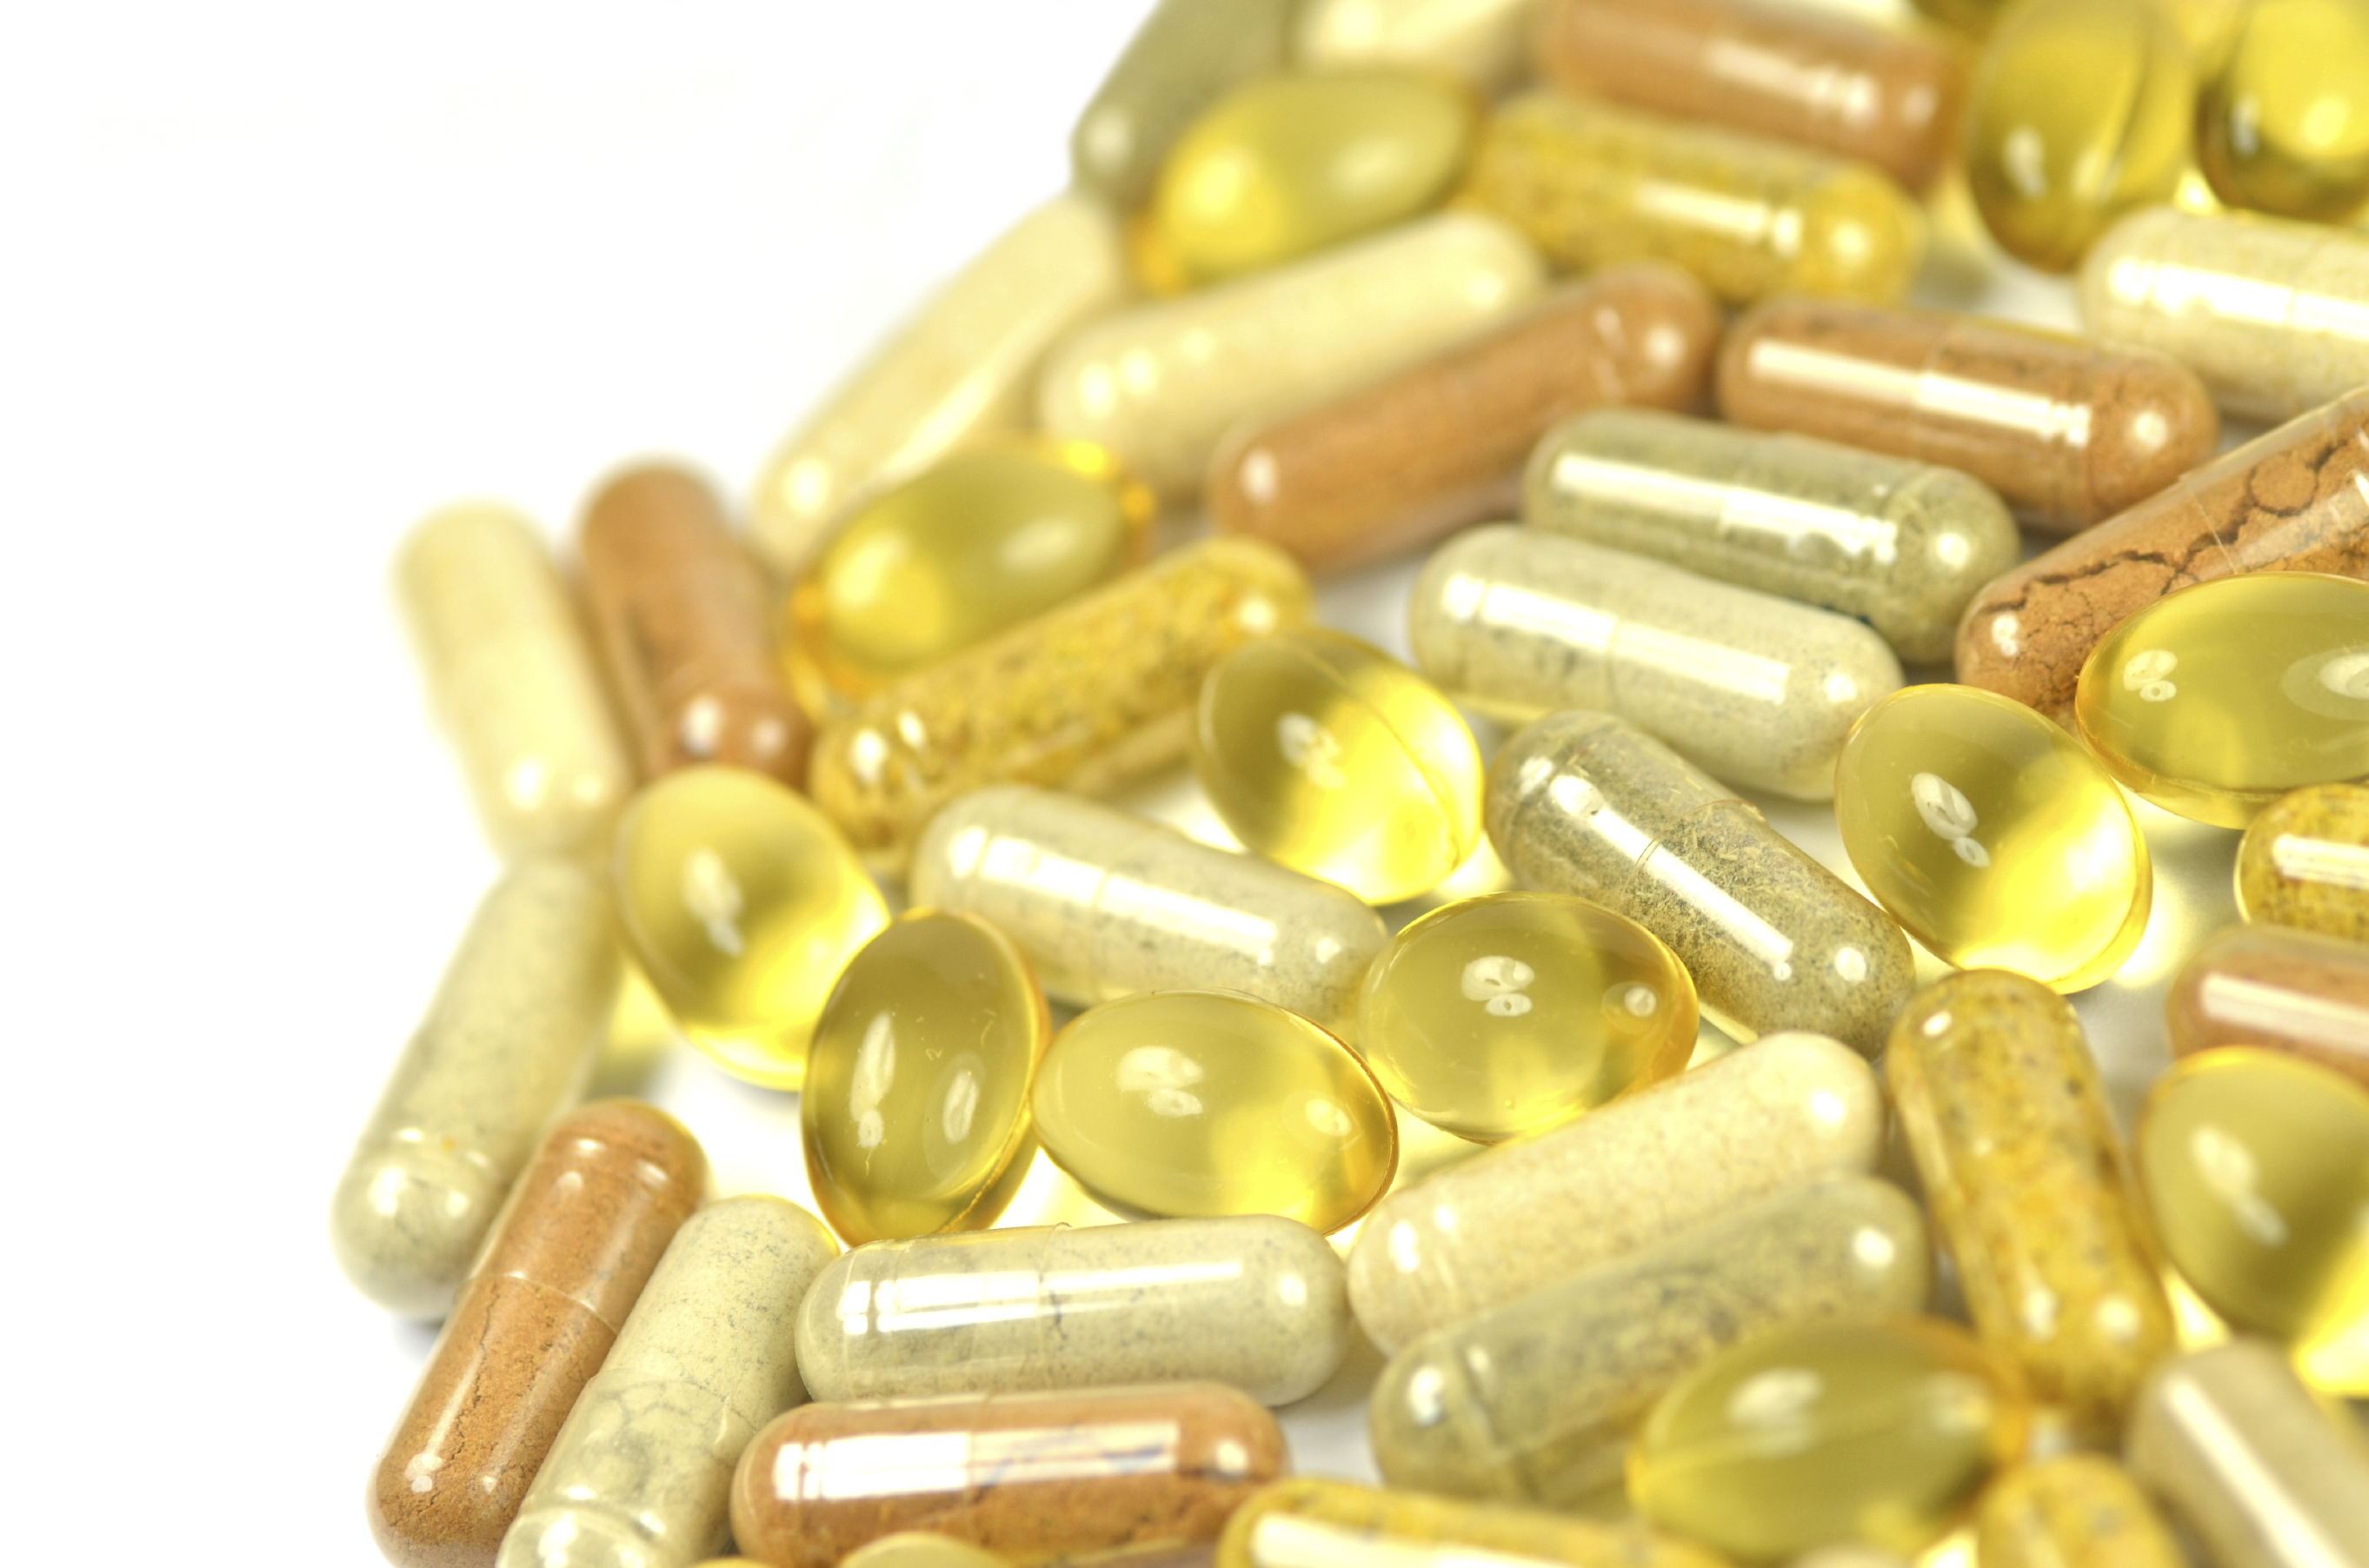 Herbal supplements filled with fake ingredients, New York